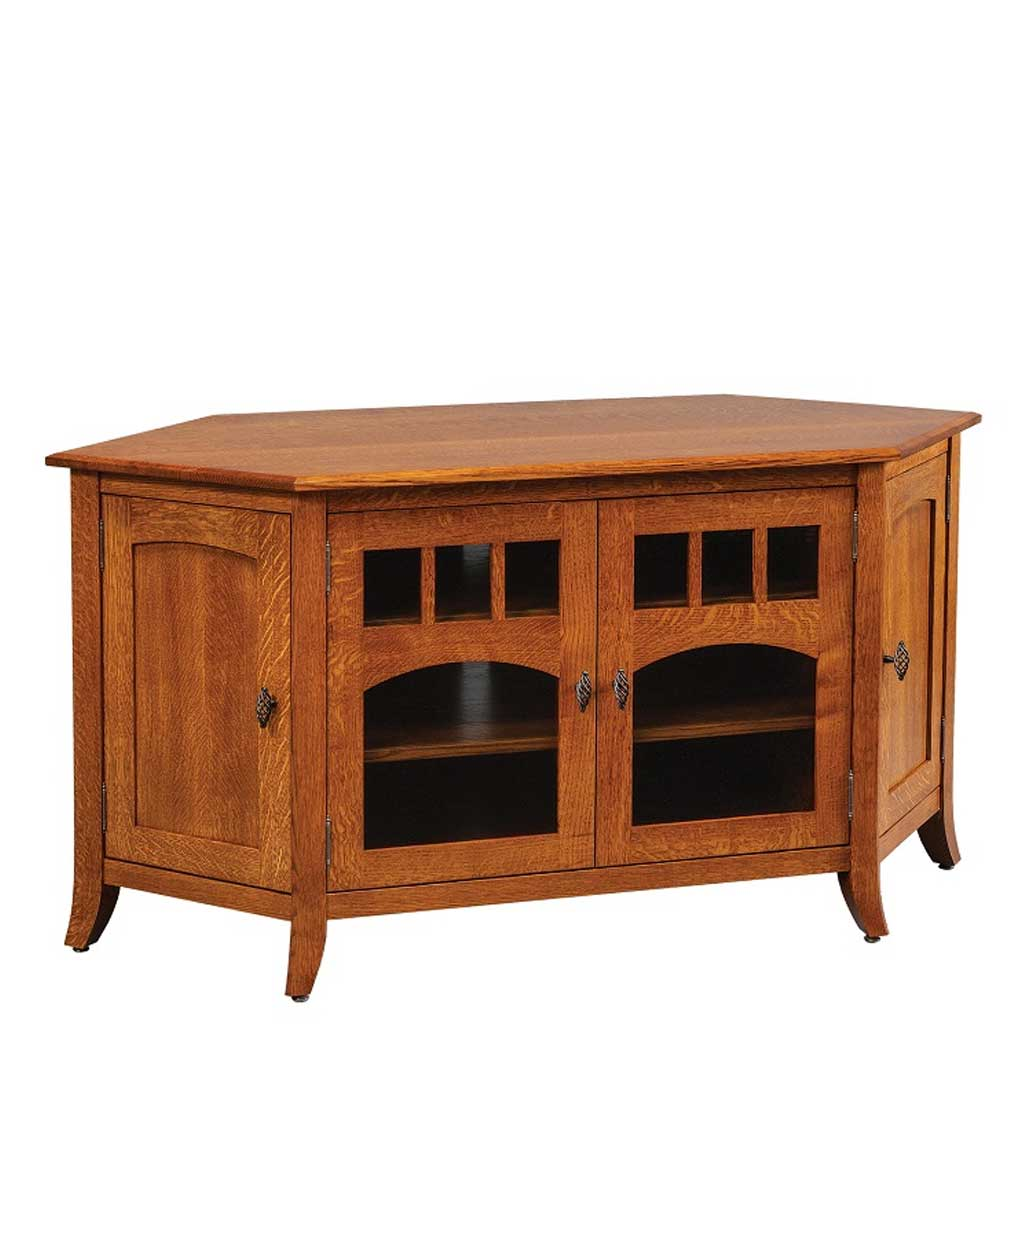 Old World Living Room Furniture: Old World Style #43 Corner TV Stand